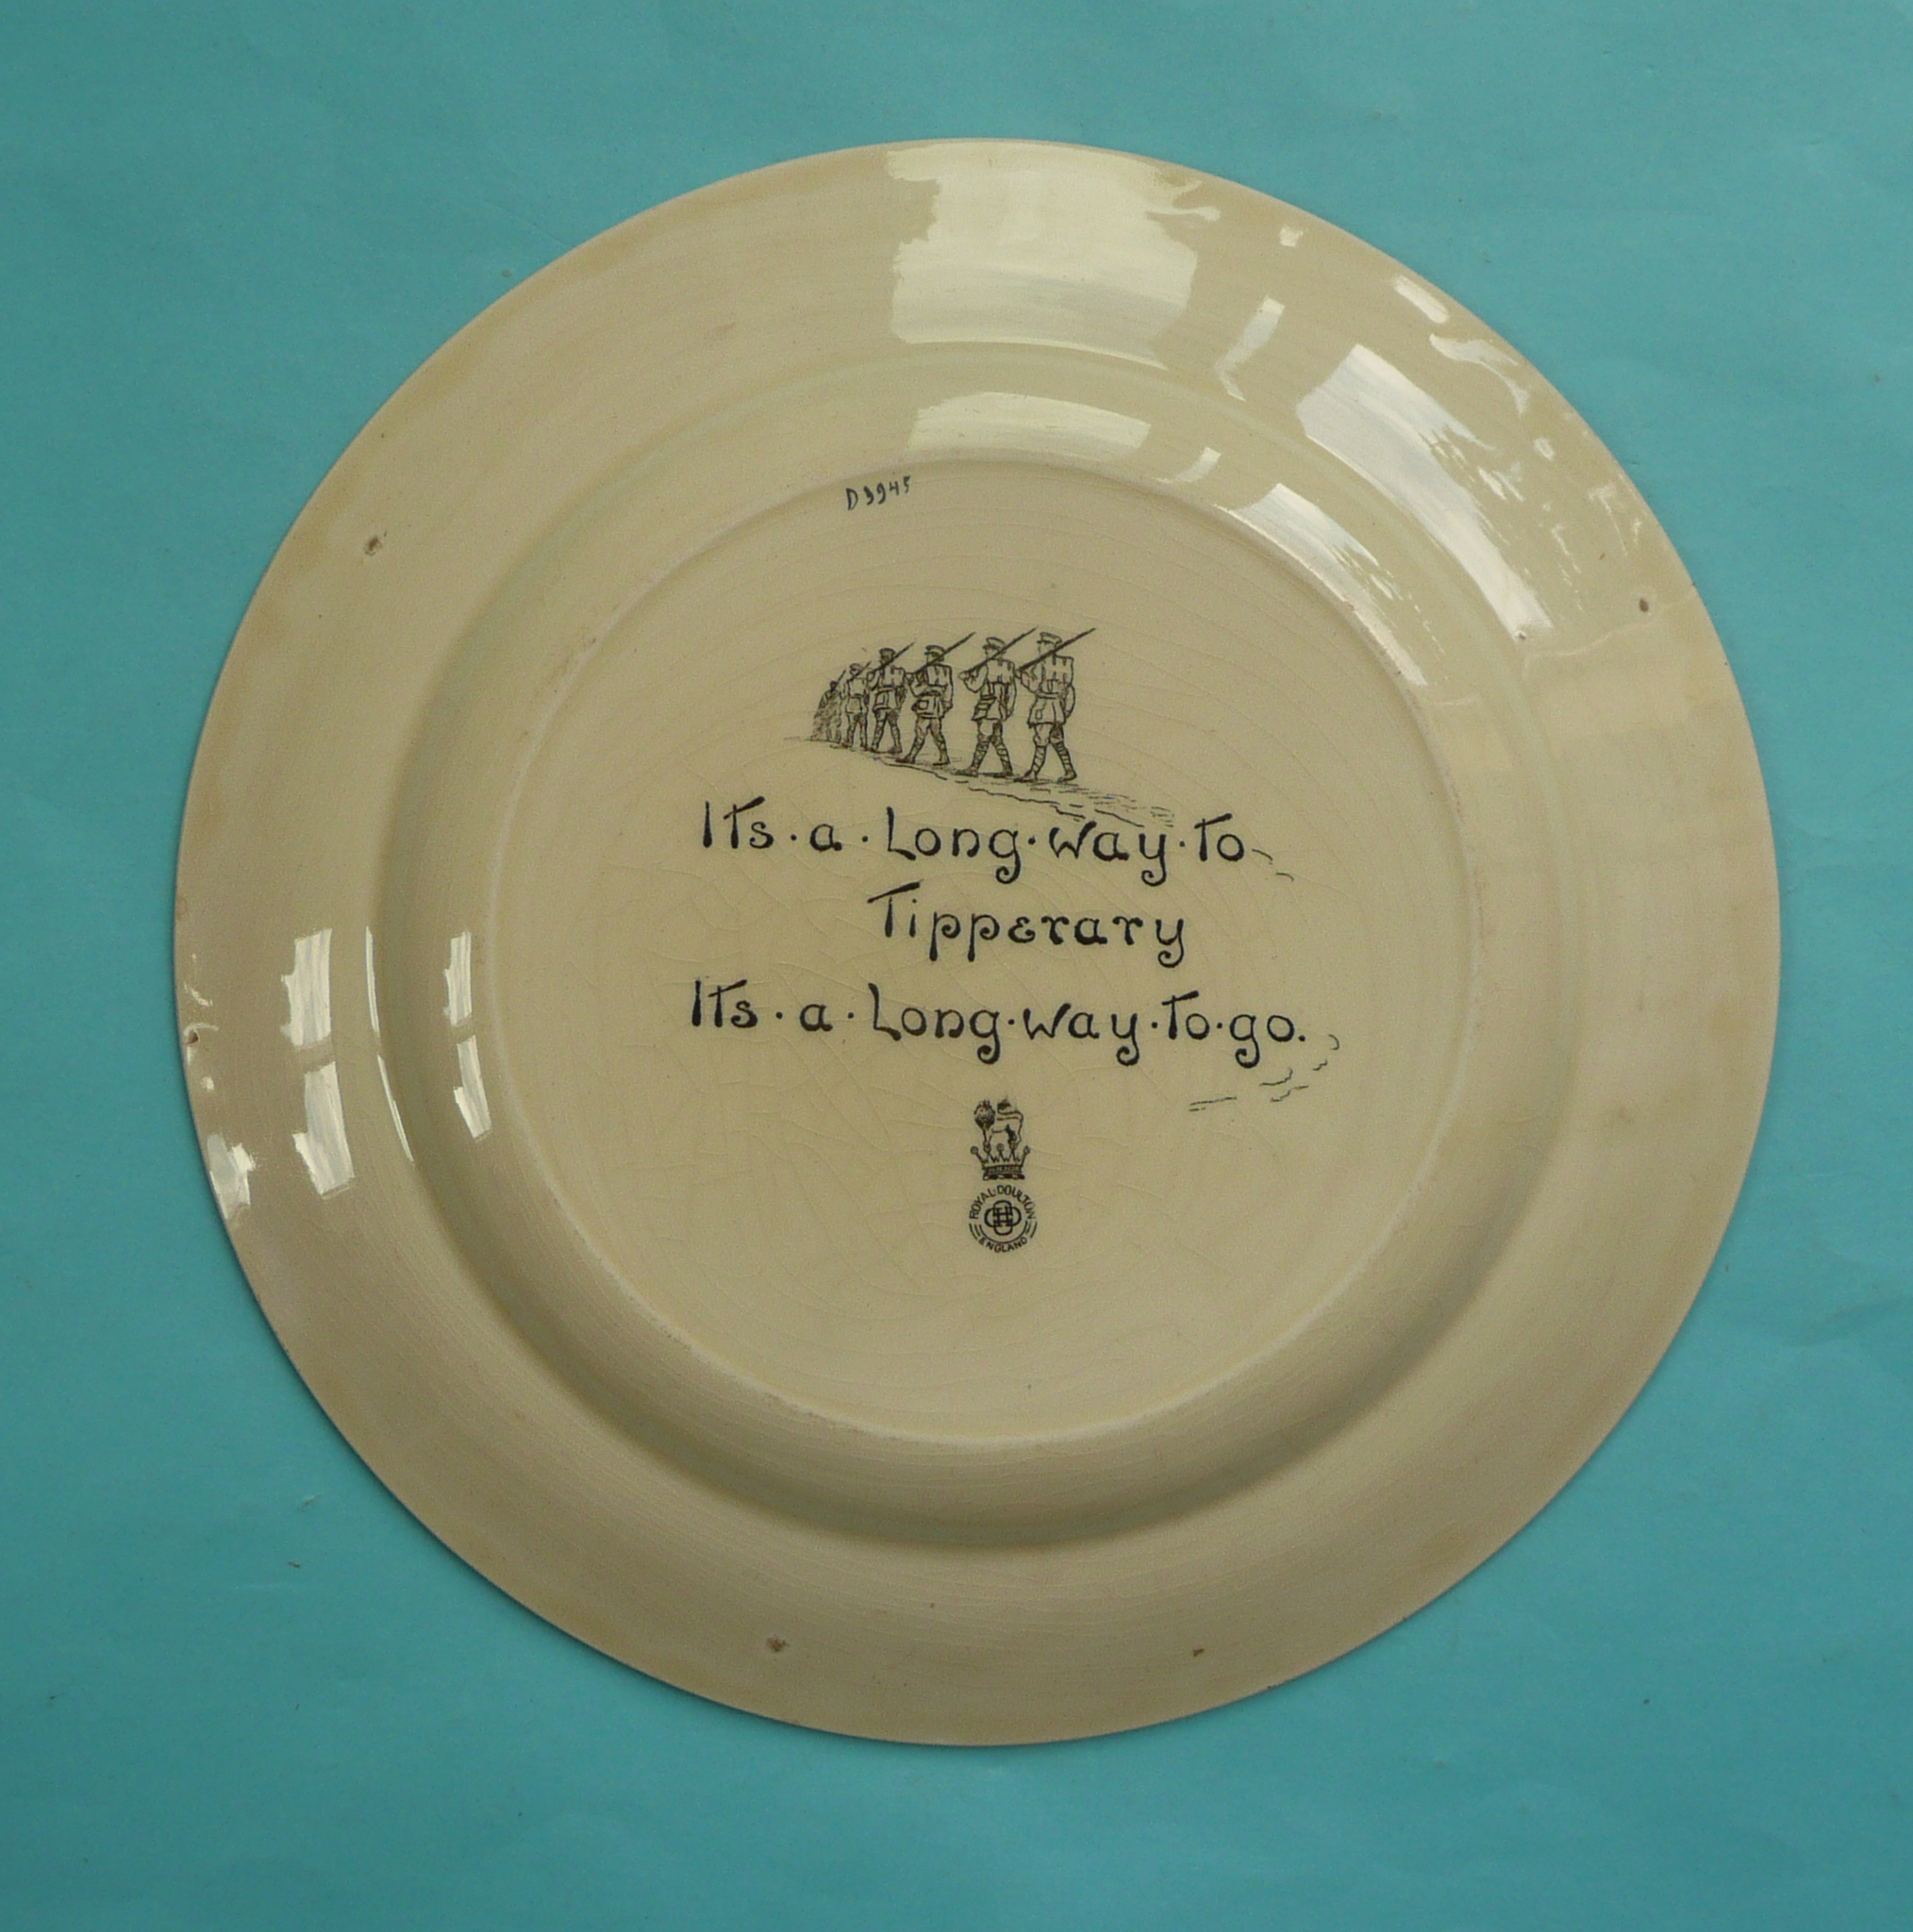 Lot 56 - World War I: a Royal Doulton plate stylishly decorated with a soldier against the Union flag, the